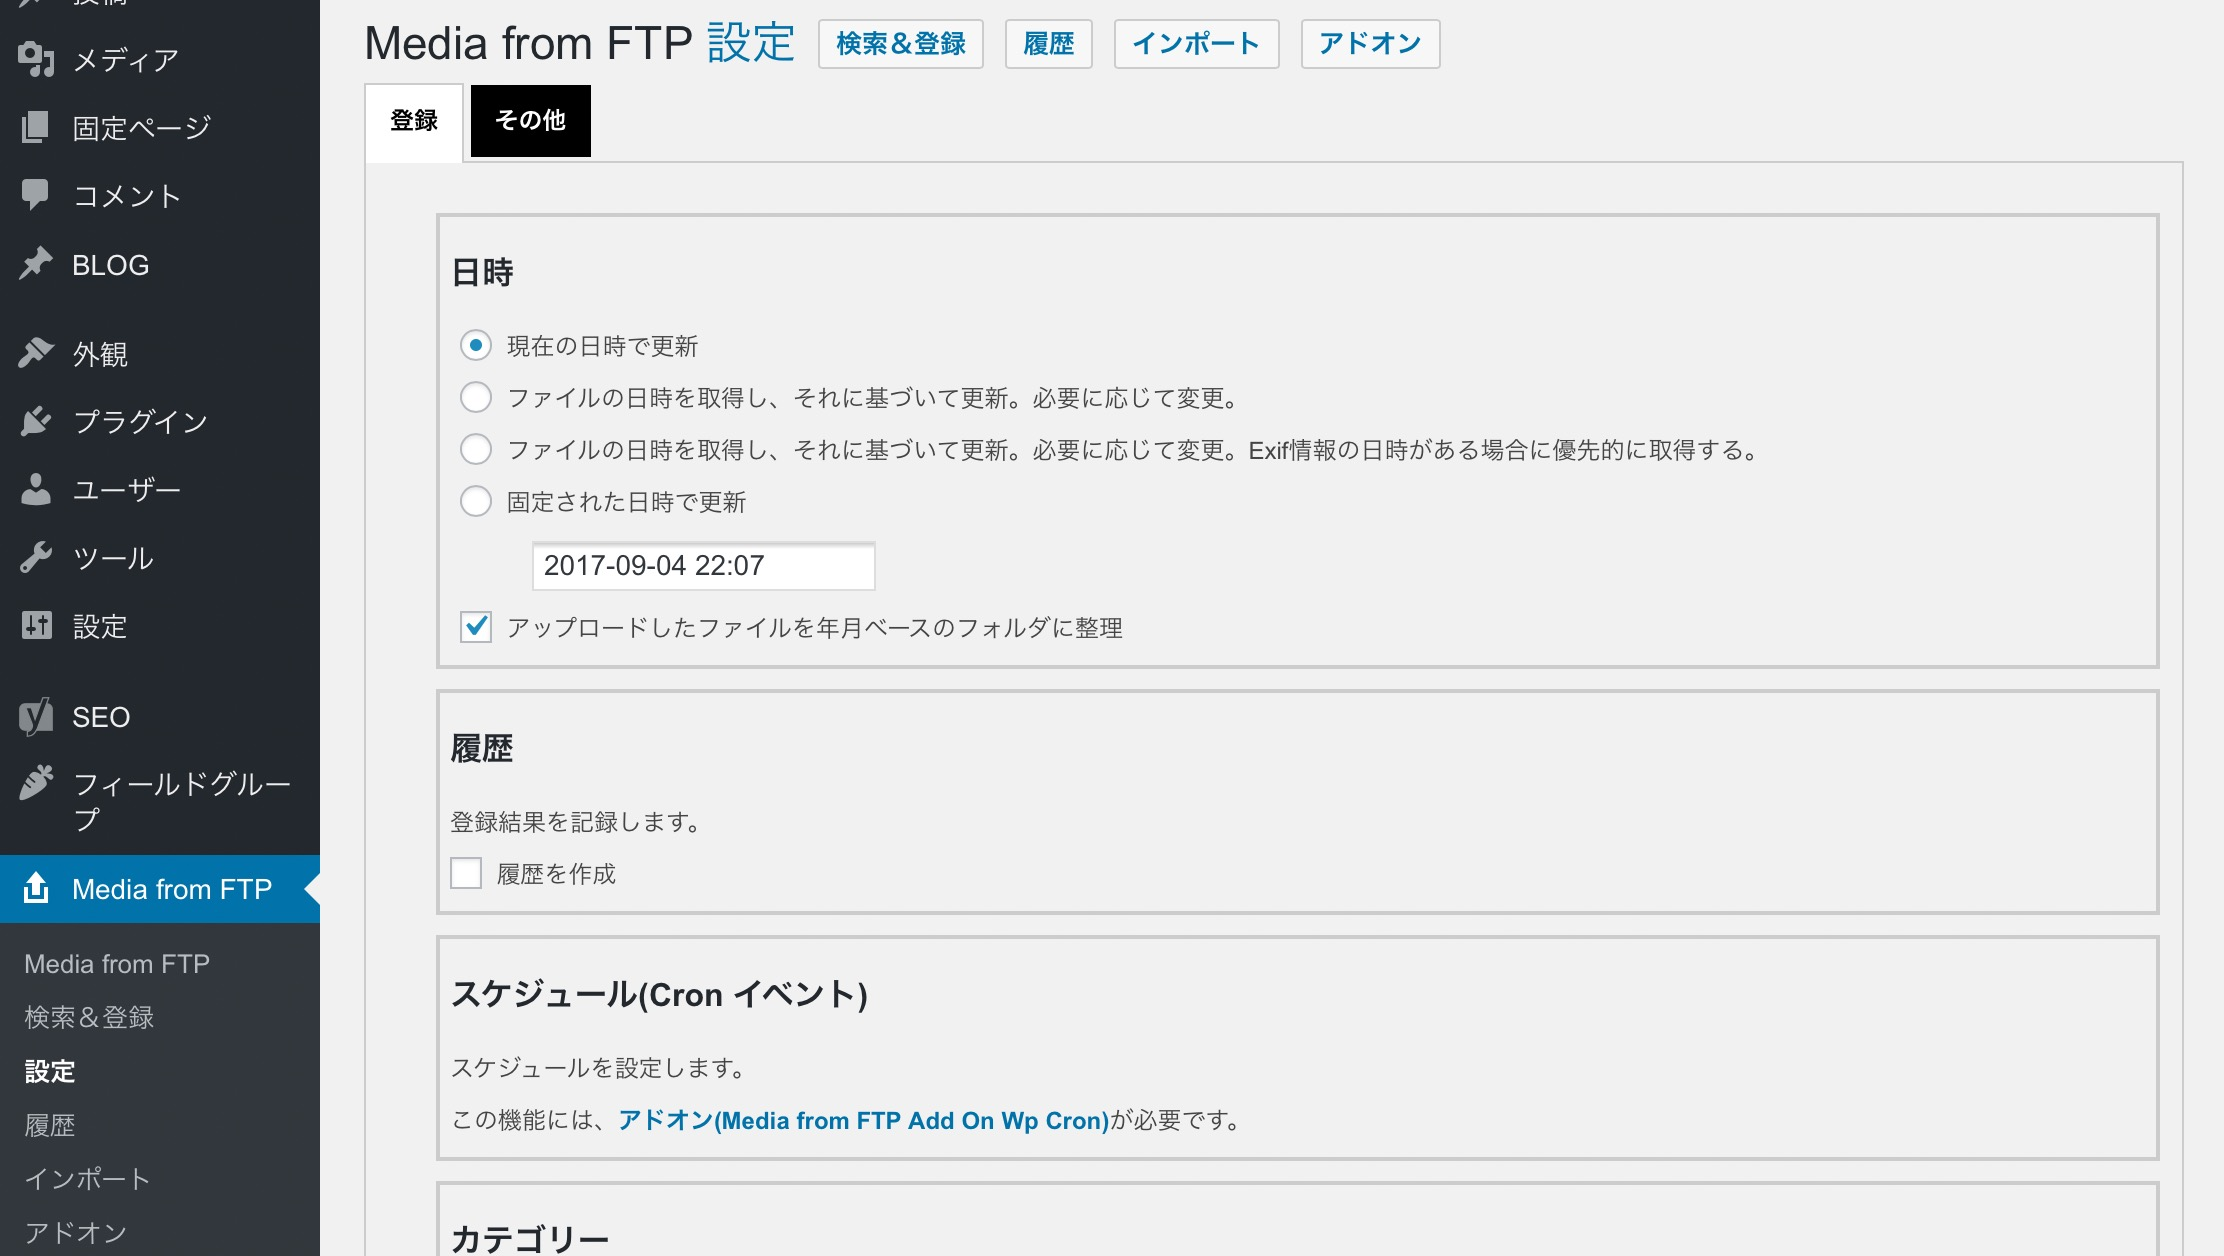 Media From FTPの設定画面